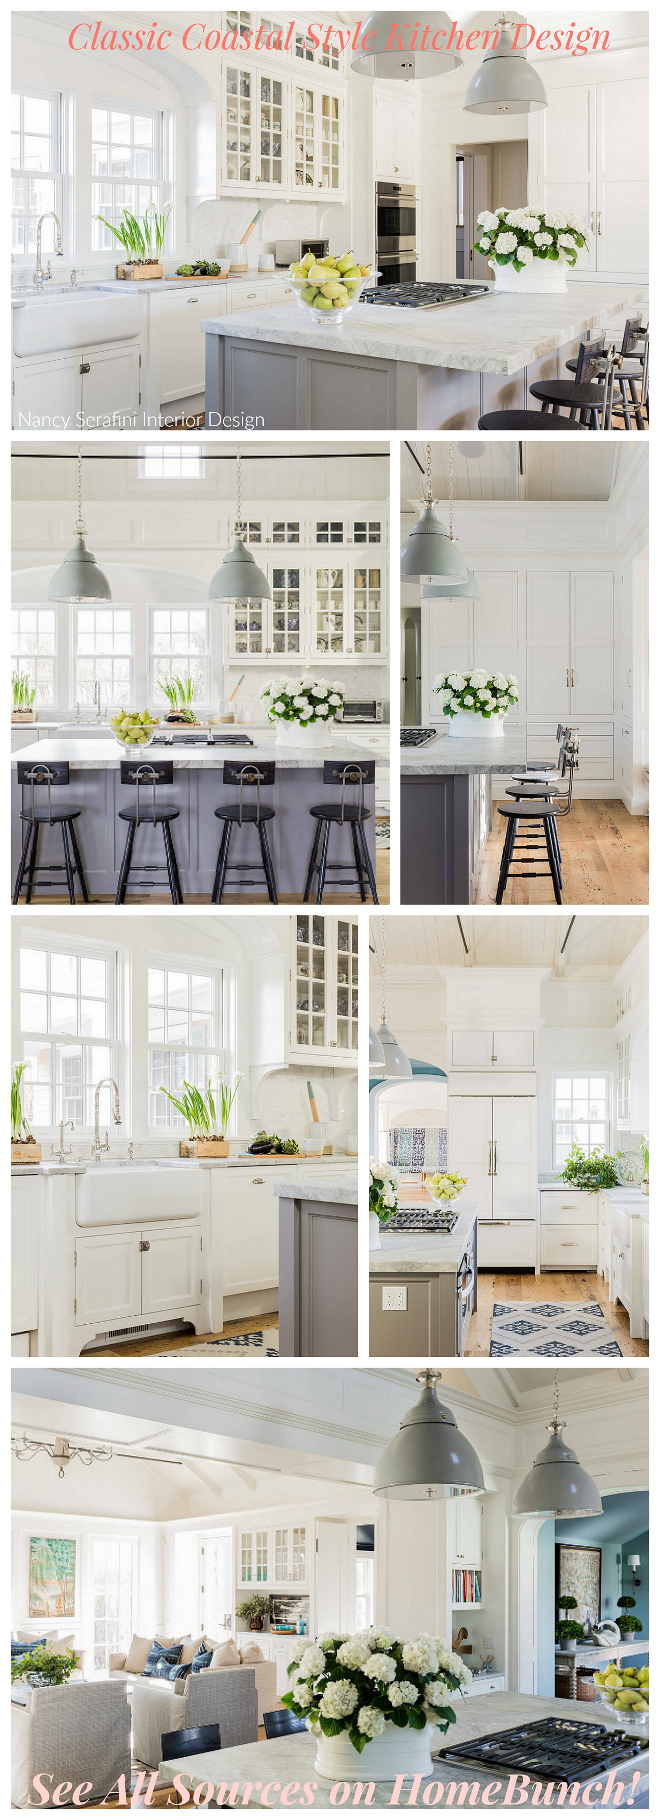 Classic Coastal Style Kitchen Design. See all sources such as paint colors, lighting, countertop, hardware, flooring on HomeBunch